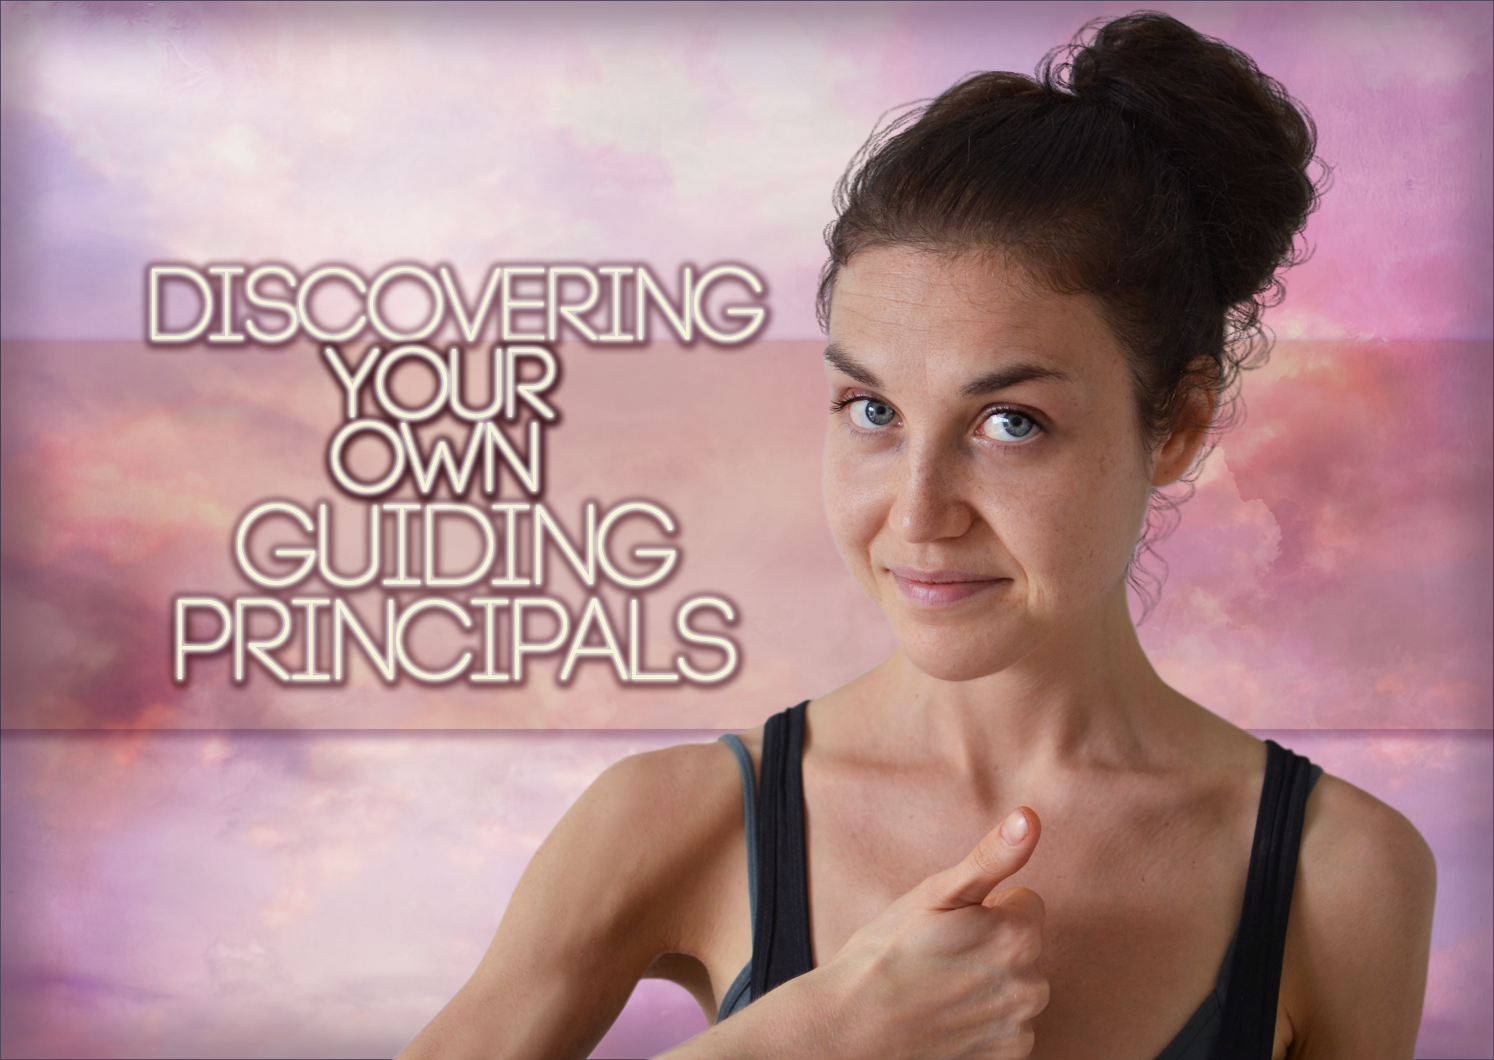 Discovering Your Own Guiding Principals: